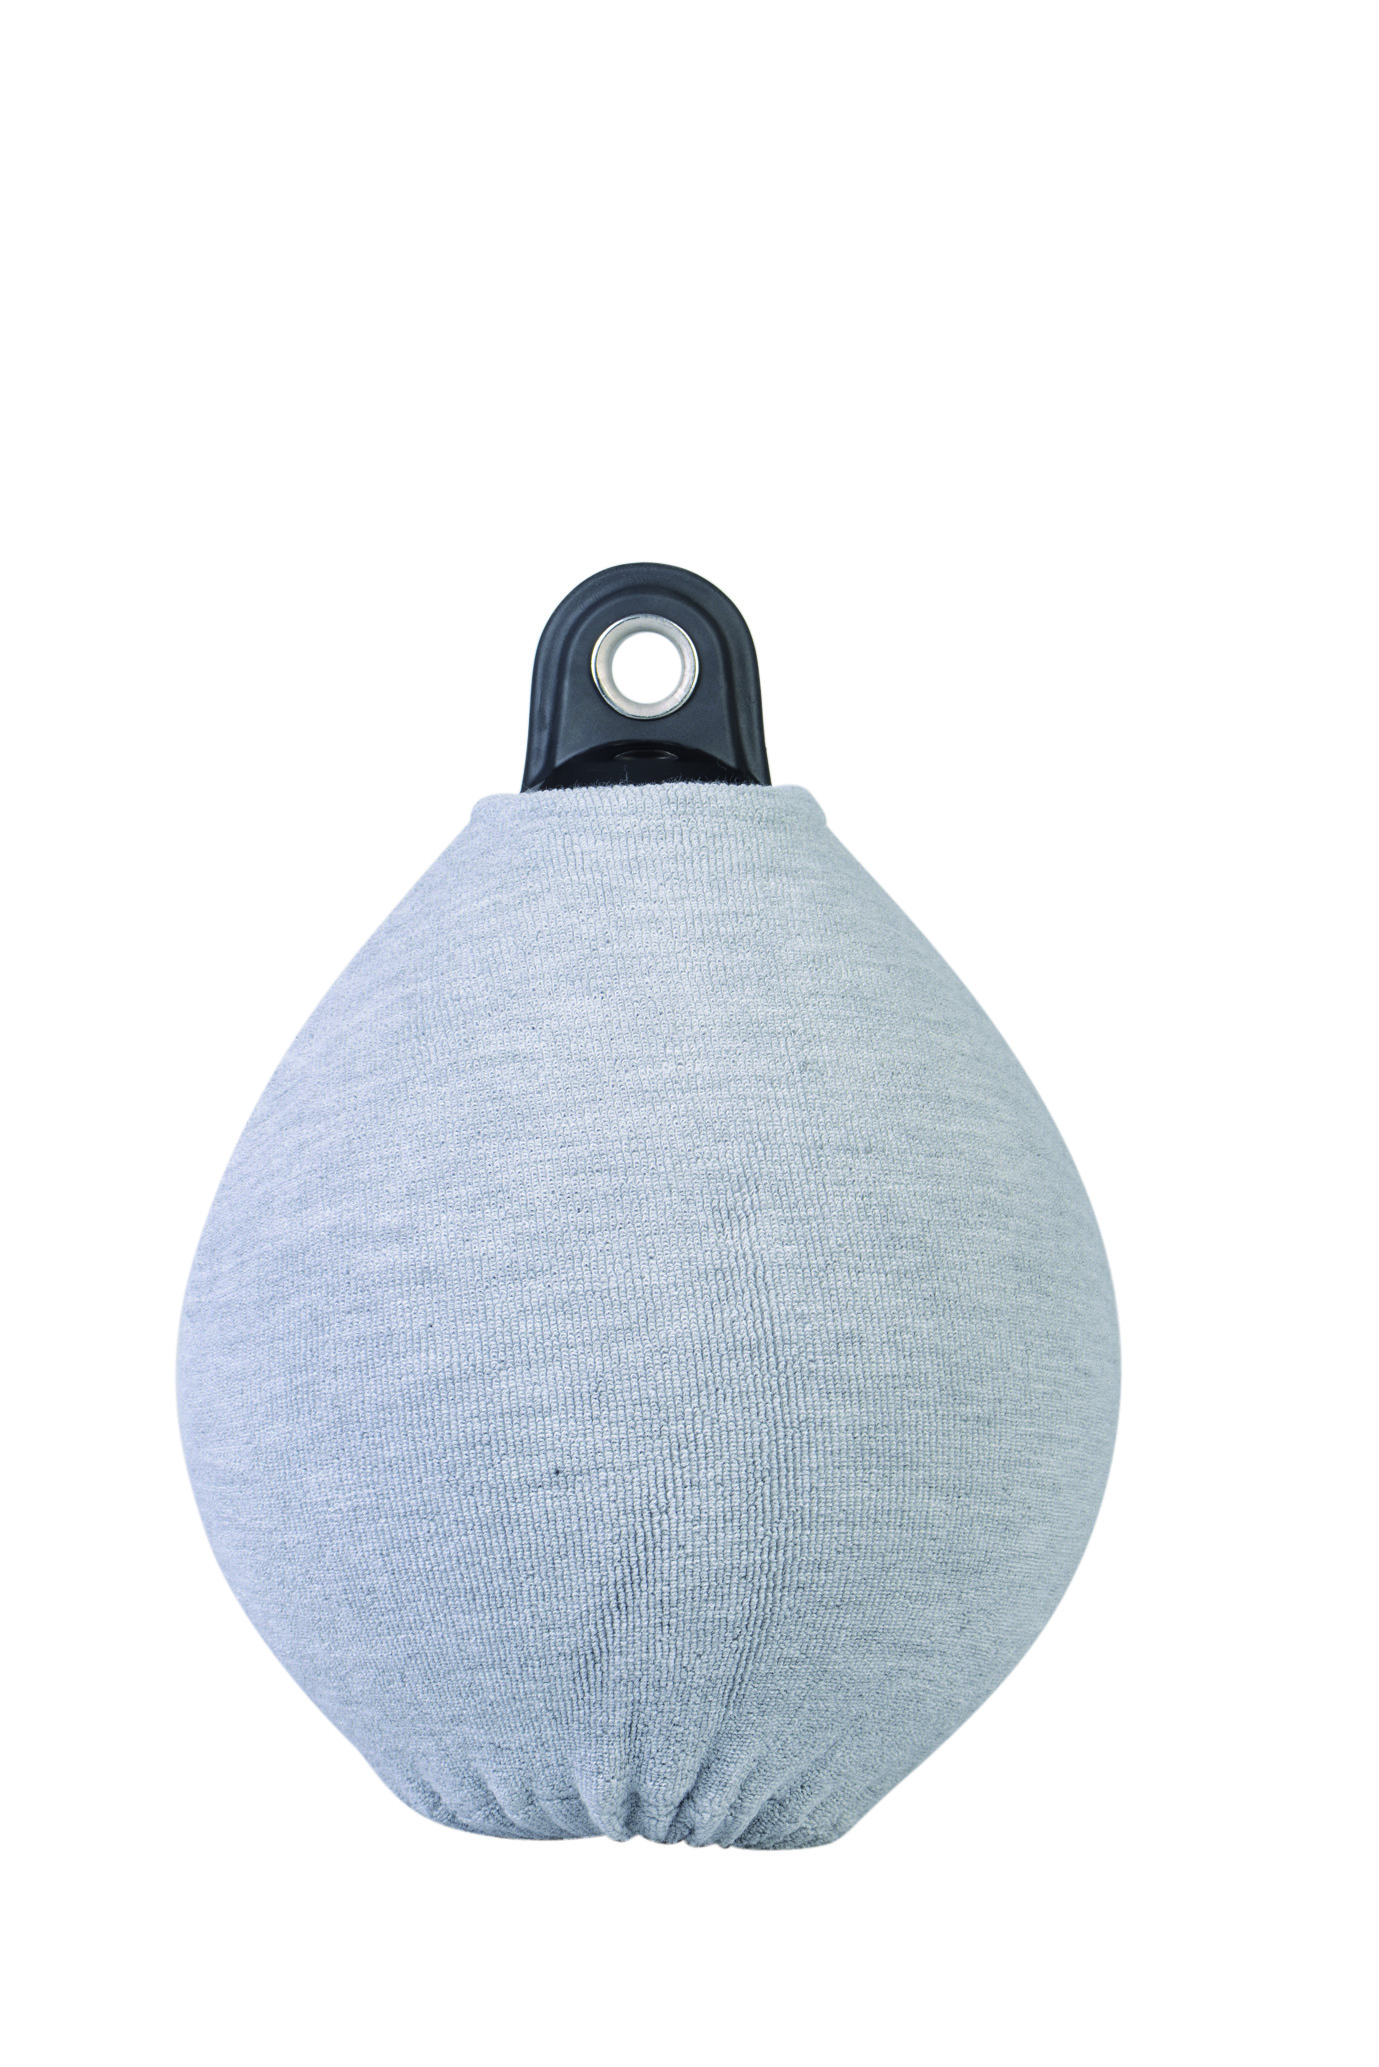 Talamex Buoy Cover 35 Grey